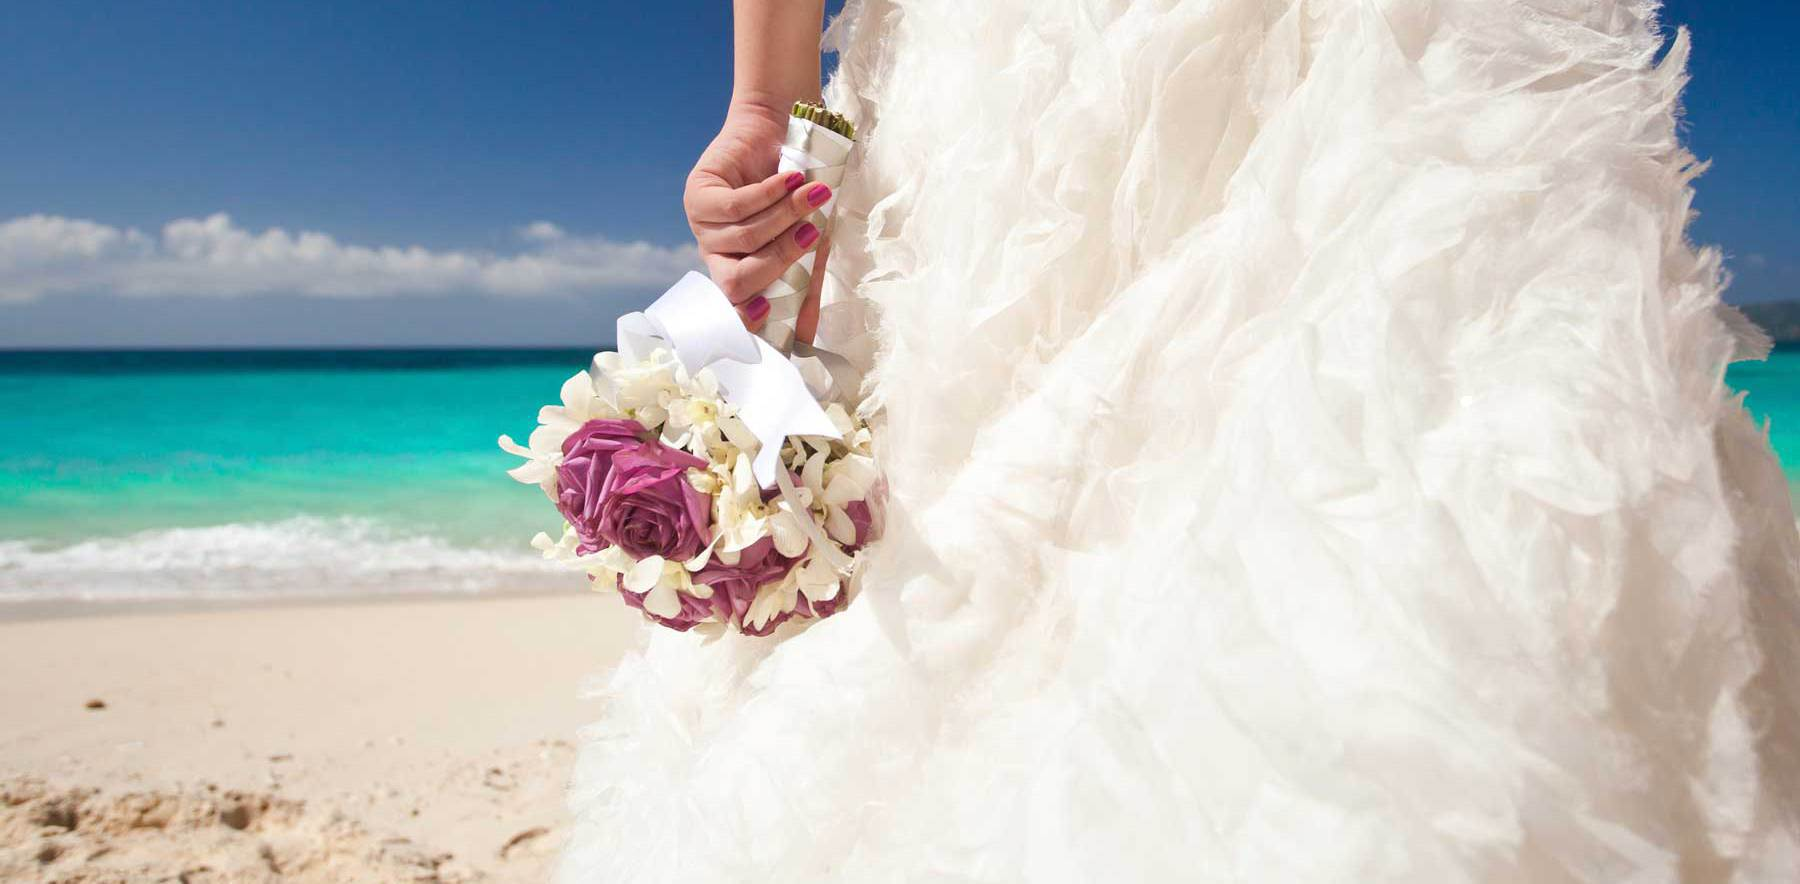 Destination, Weddings, destination weddings, bride, groom, wed